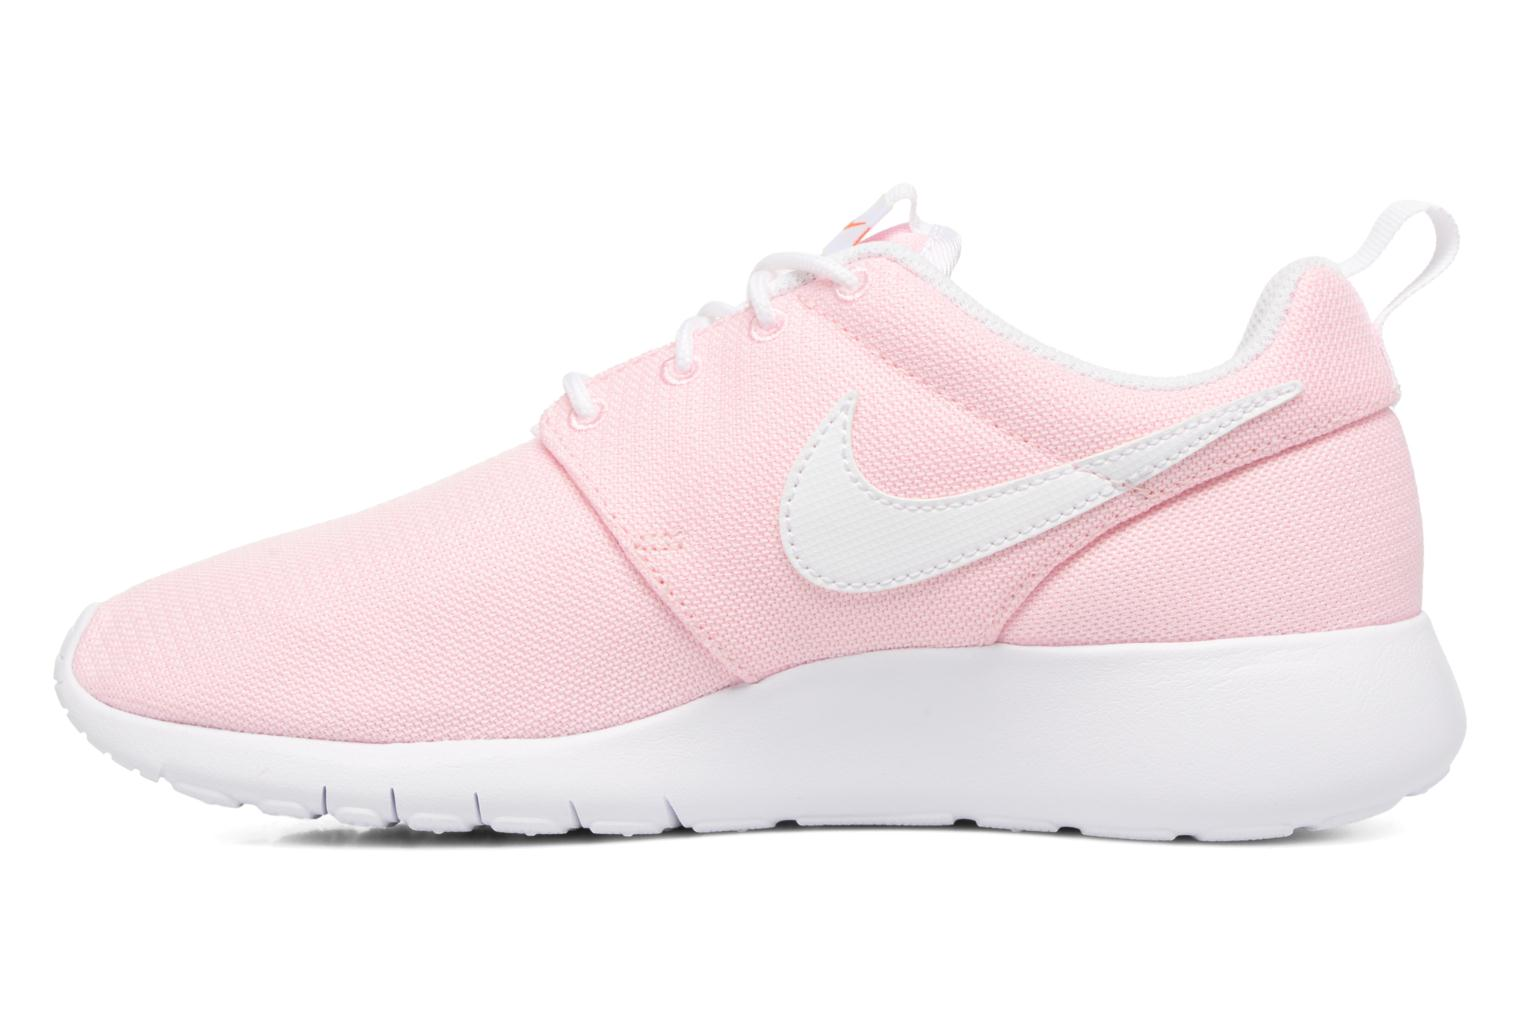 NIKE ROSHE ONE (GS) Prism Pink/White-Safety Orange